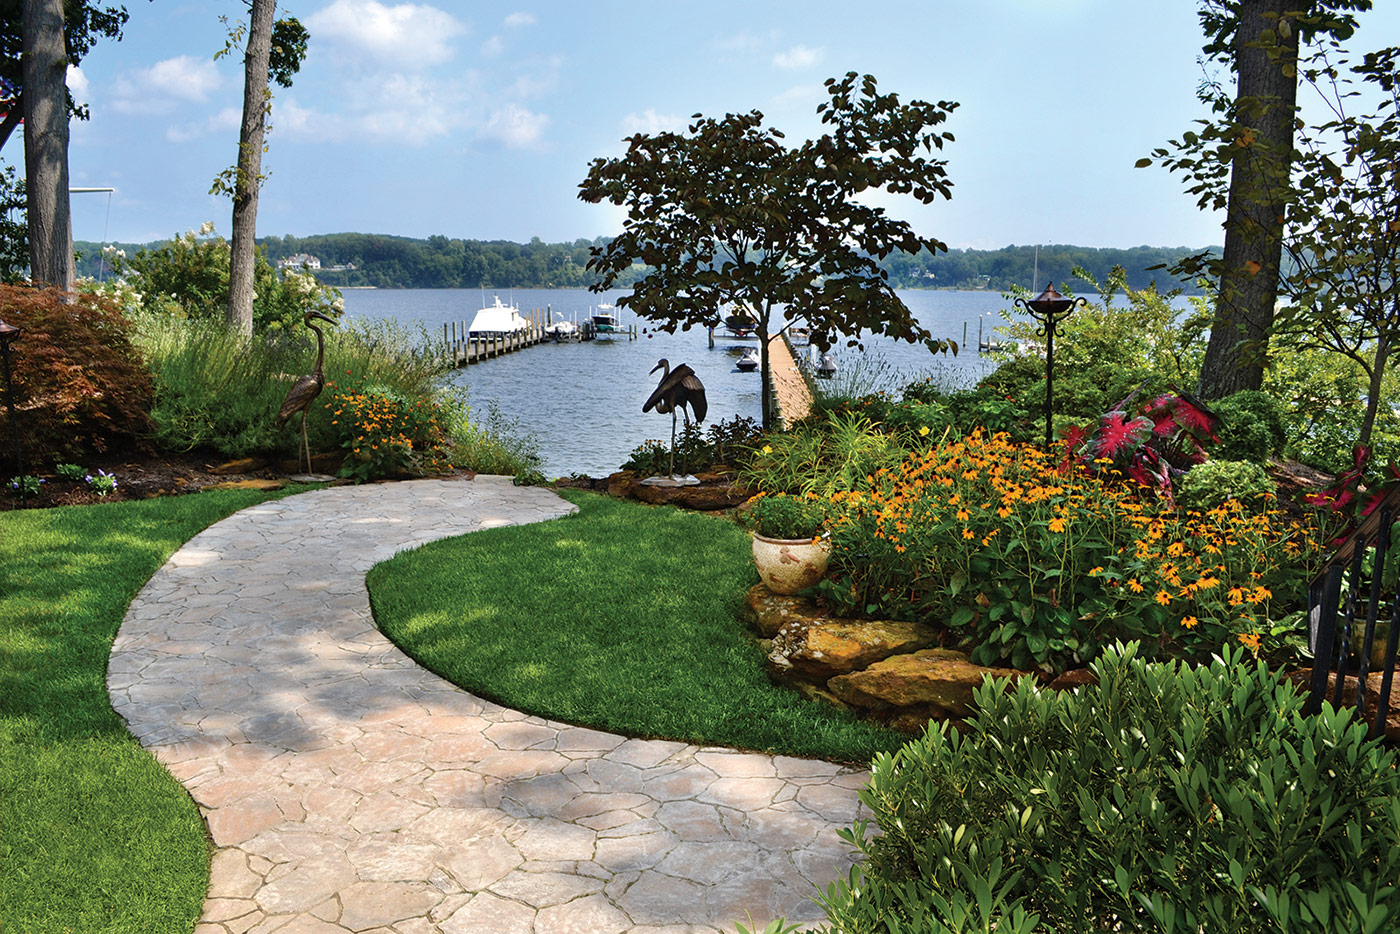 Waterfront Landscaping - Homestead Gardens Landscape Division on Waterfront Backyard Ideas id=52191